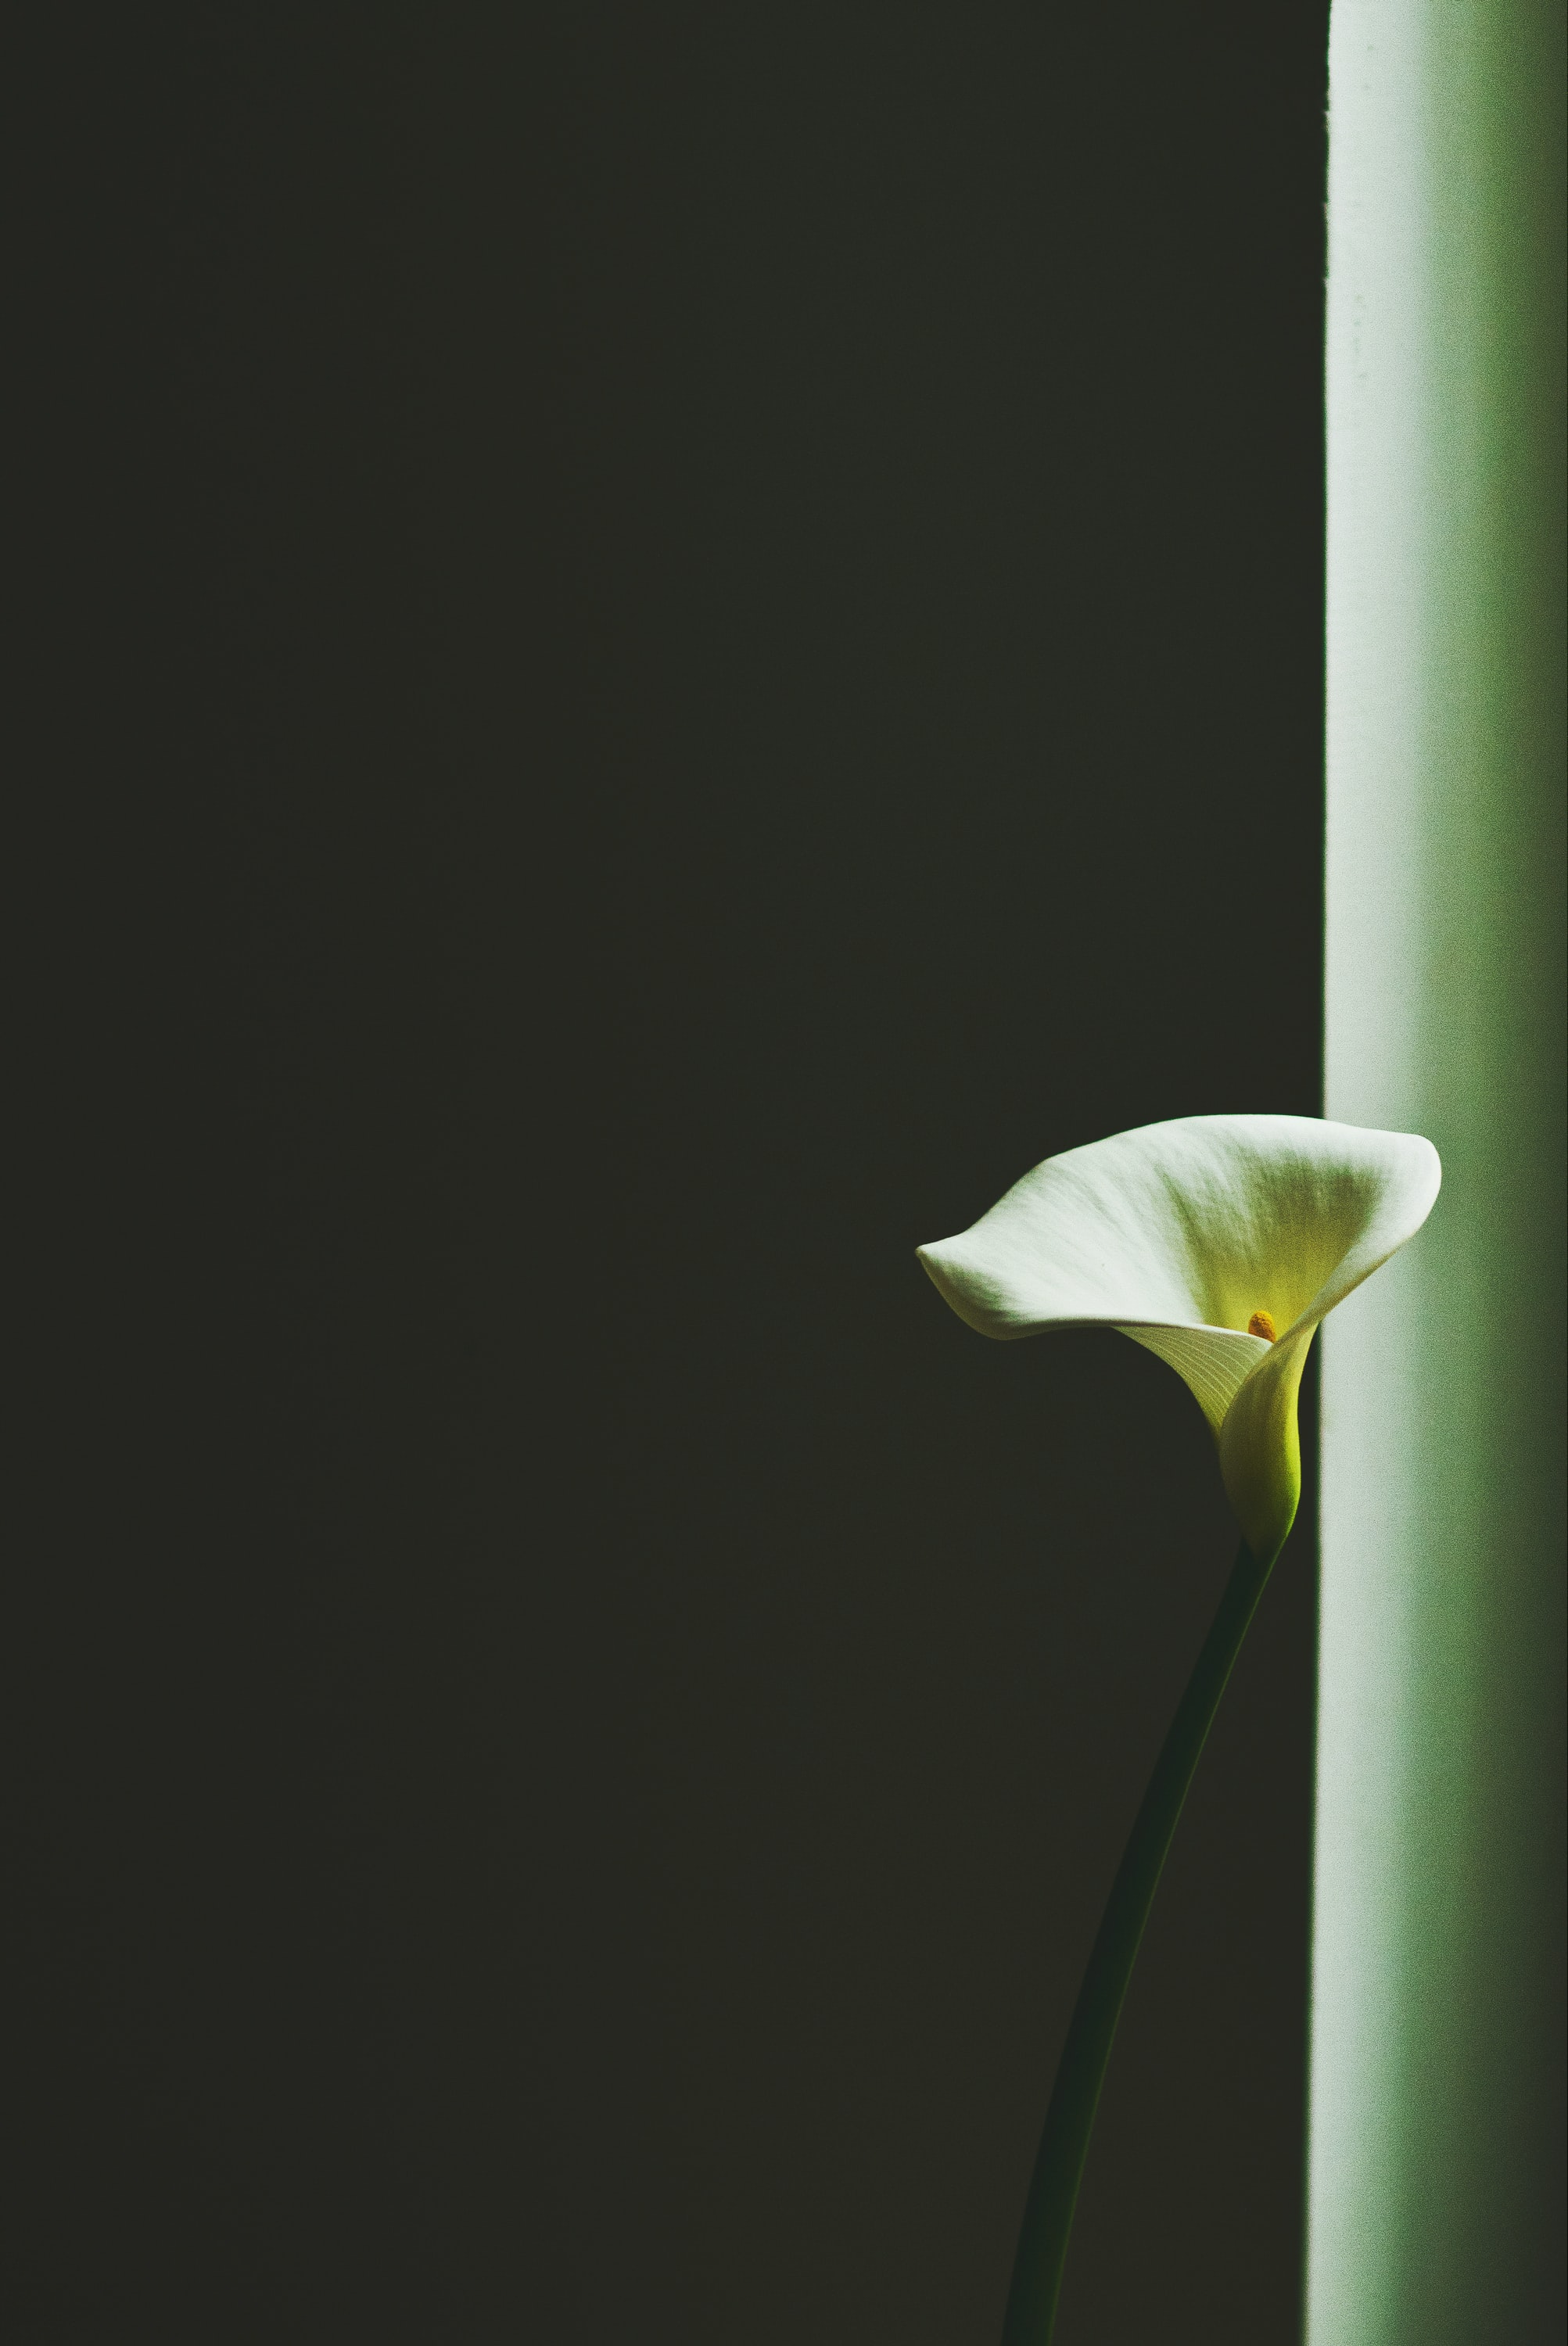 Close-up of an elegant white bell-shaped flower against a dark background